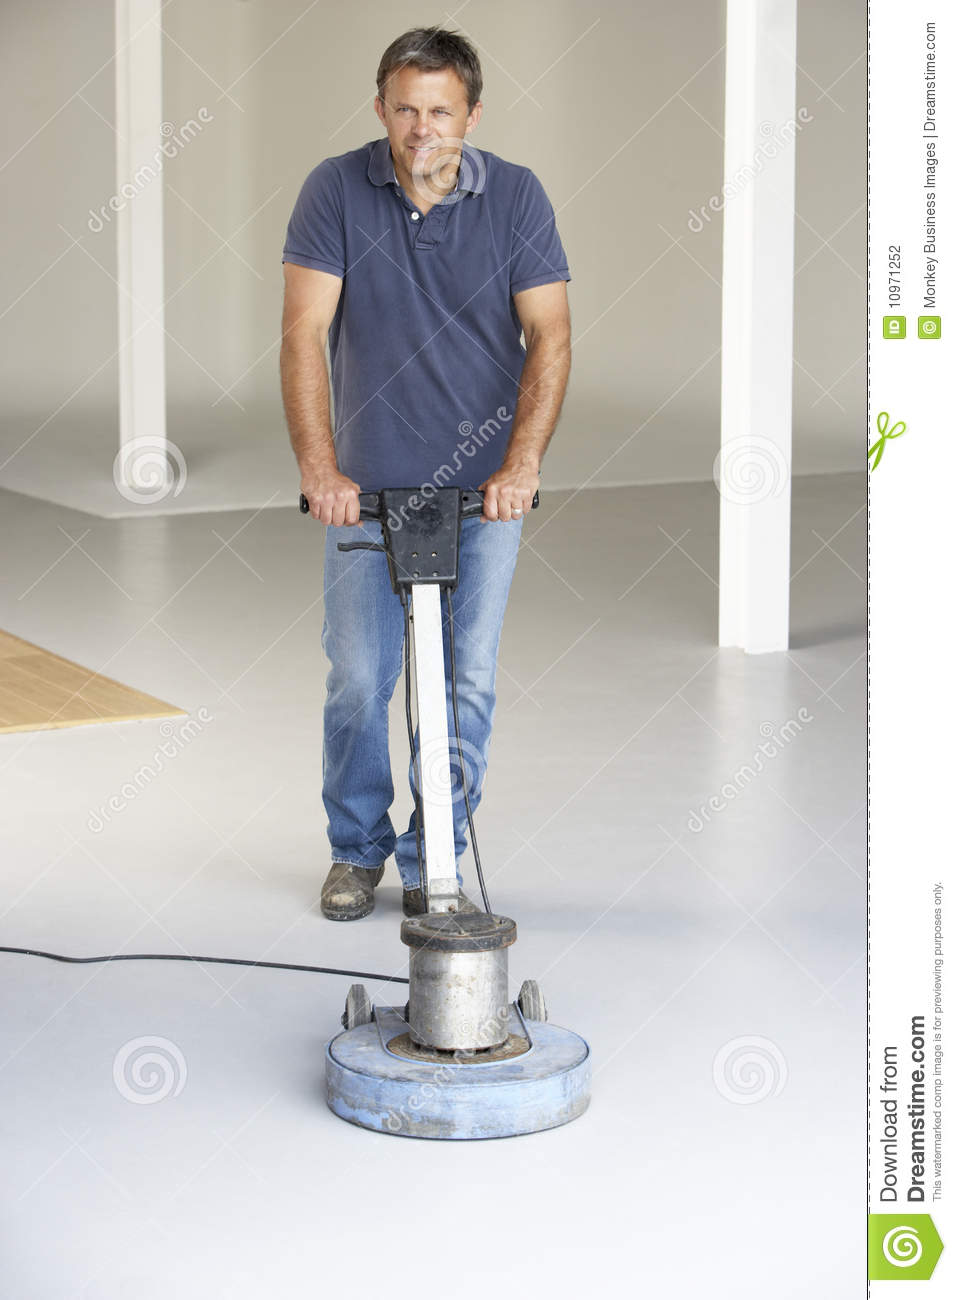 Cleaner Polishing Office Floor Stock Photo Image Of